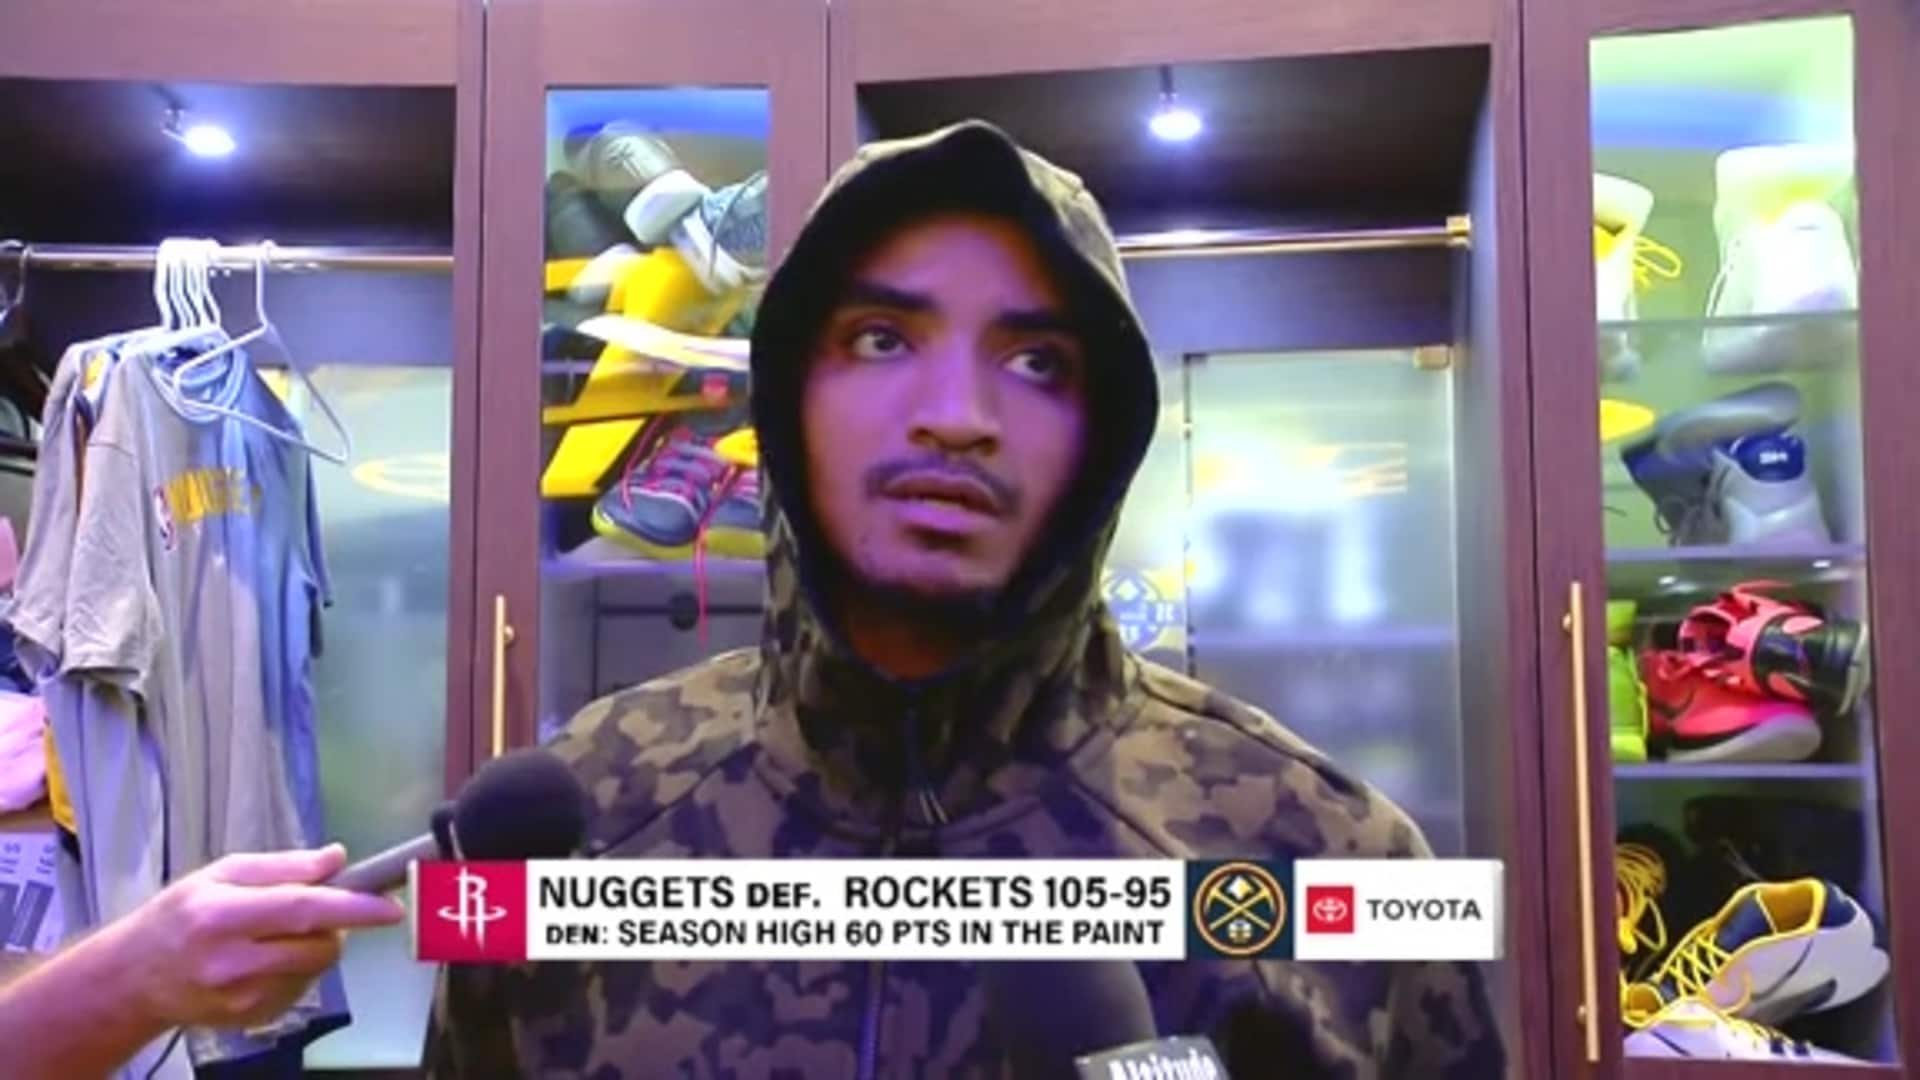 Nuggets vs. Rockets: Gary Harris postgame interview